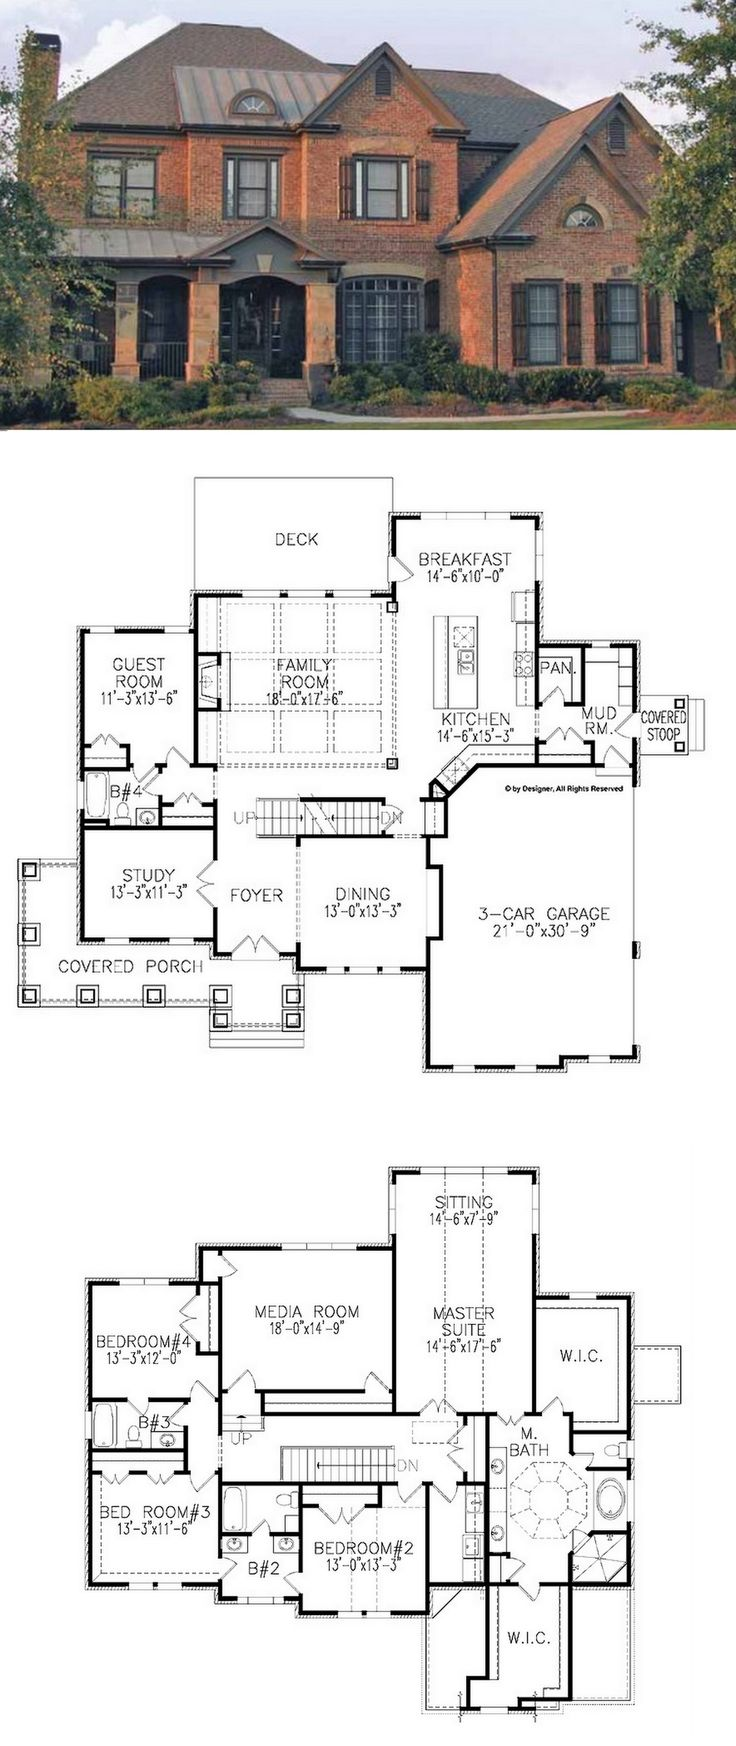 Best 25 5 bedroom house plans ideas only on pinterest 4 for Dream house blueprints